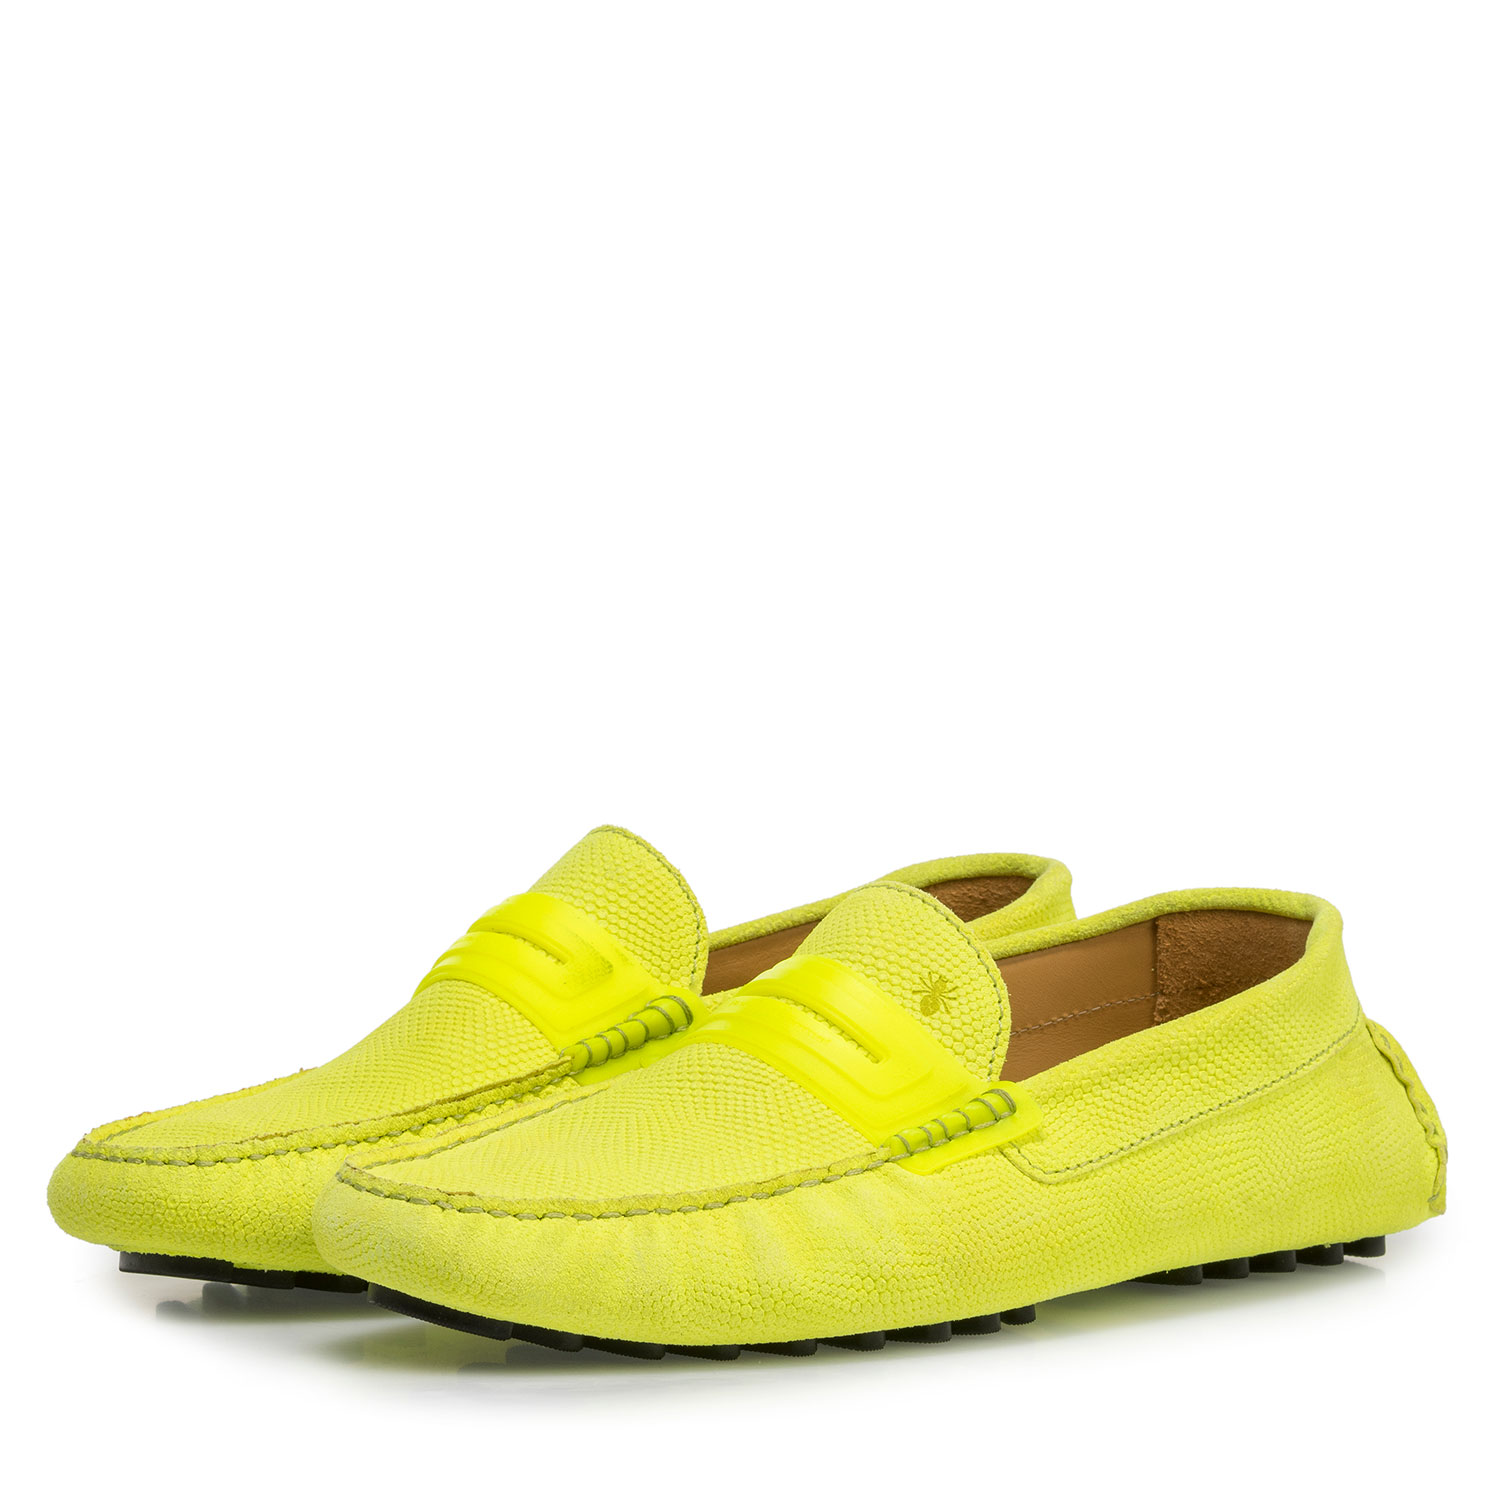 15215/01 - Premium fluorescent yellow leather moccasin